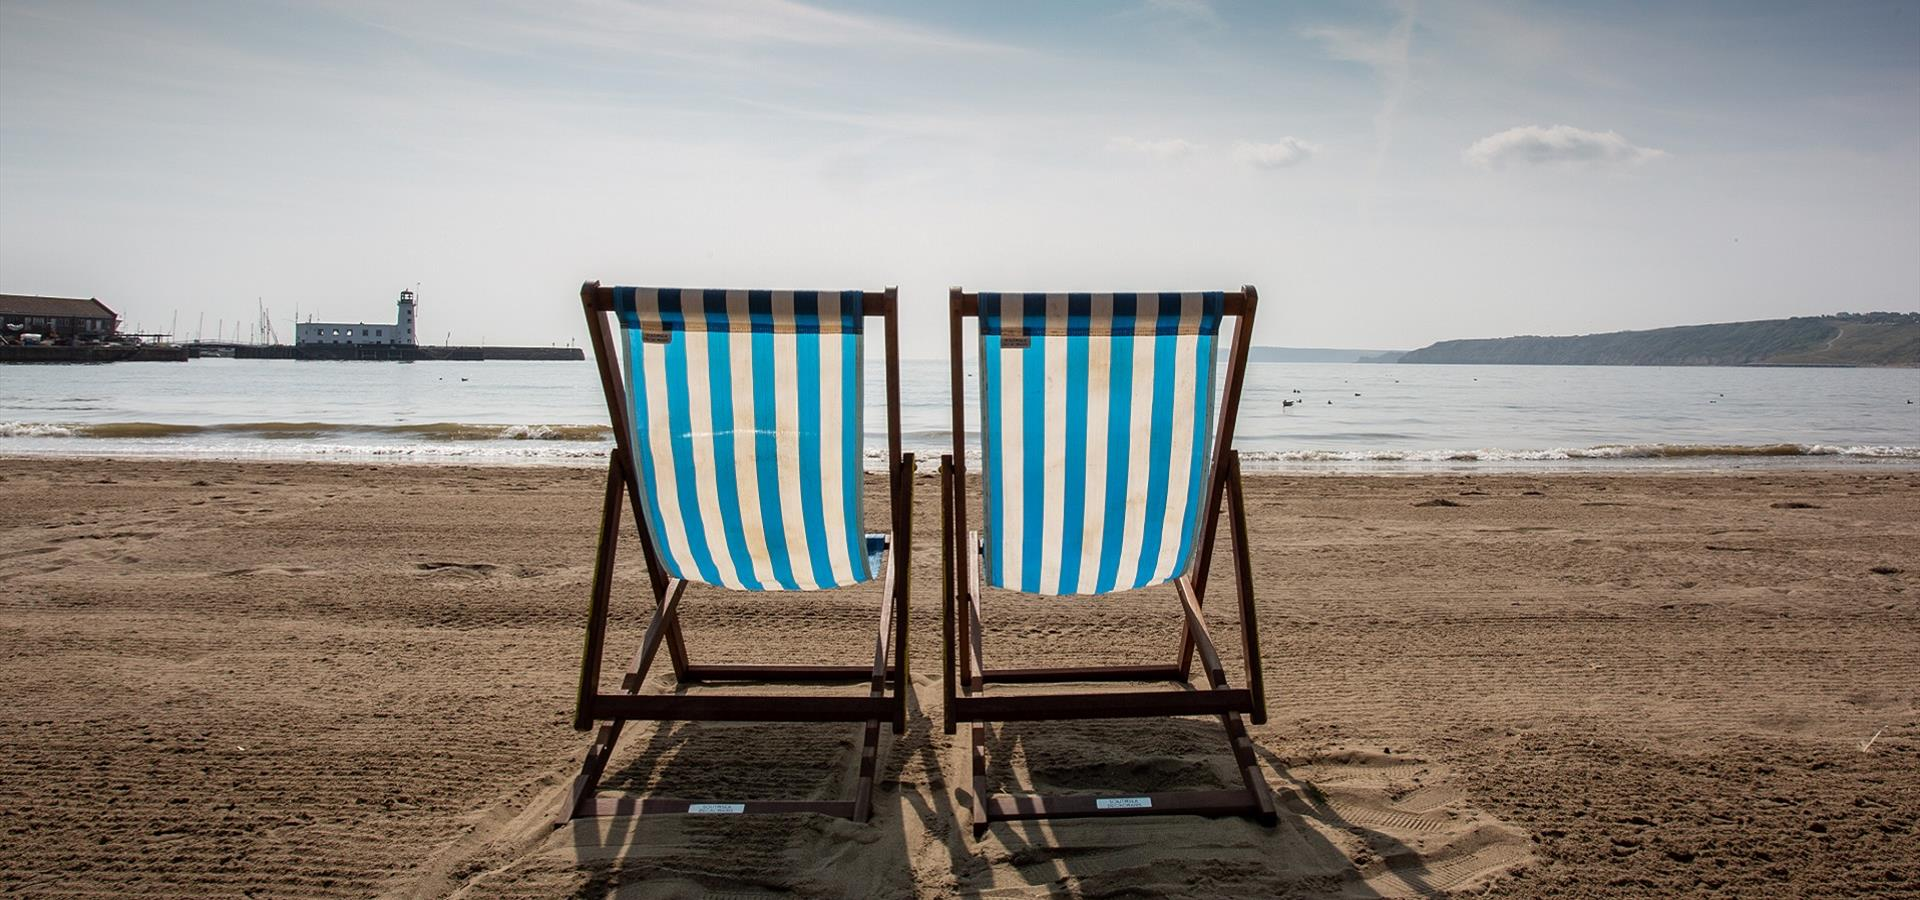 An image of Scarborough South Bay Deck Chair - By Ravage Productions